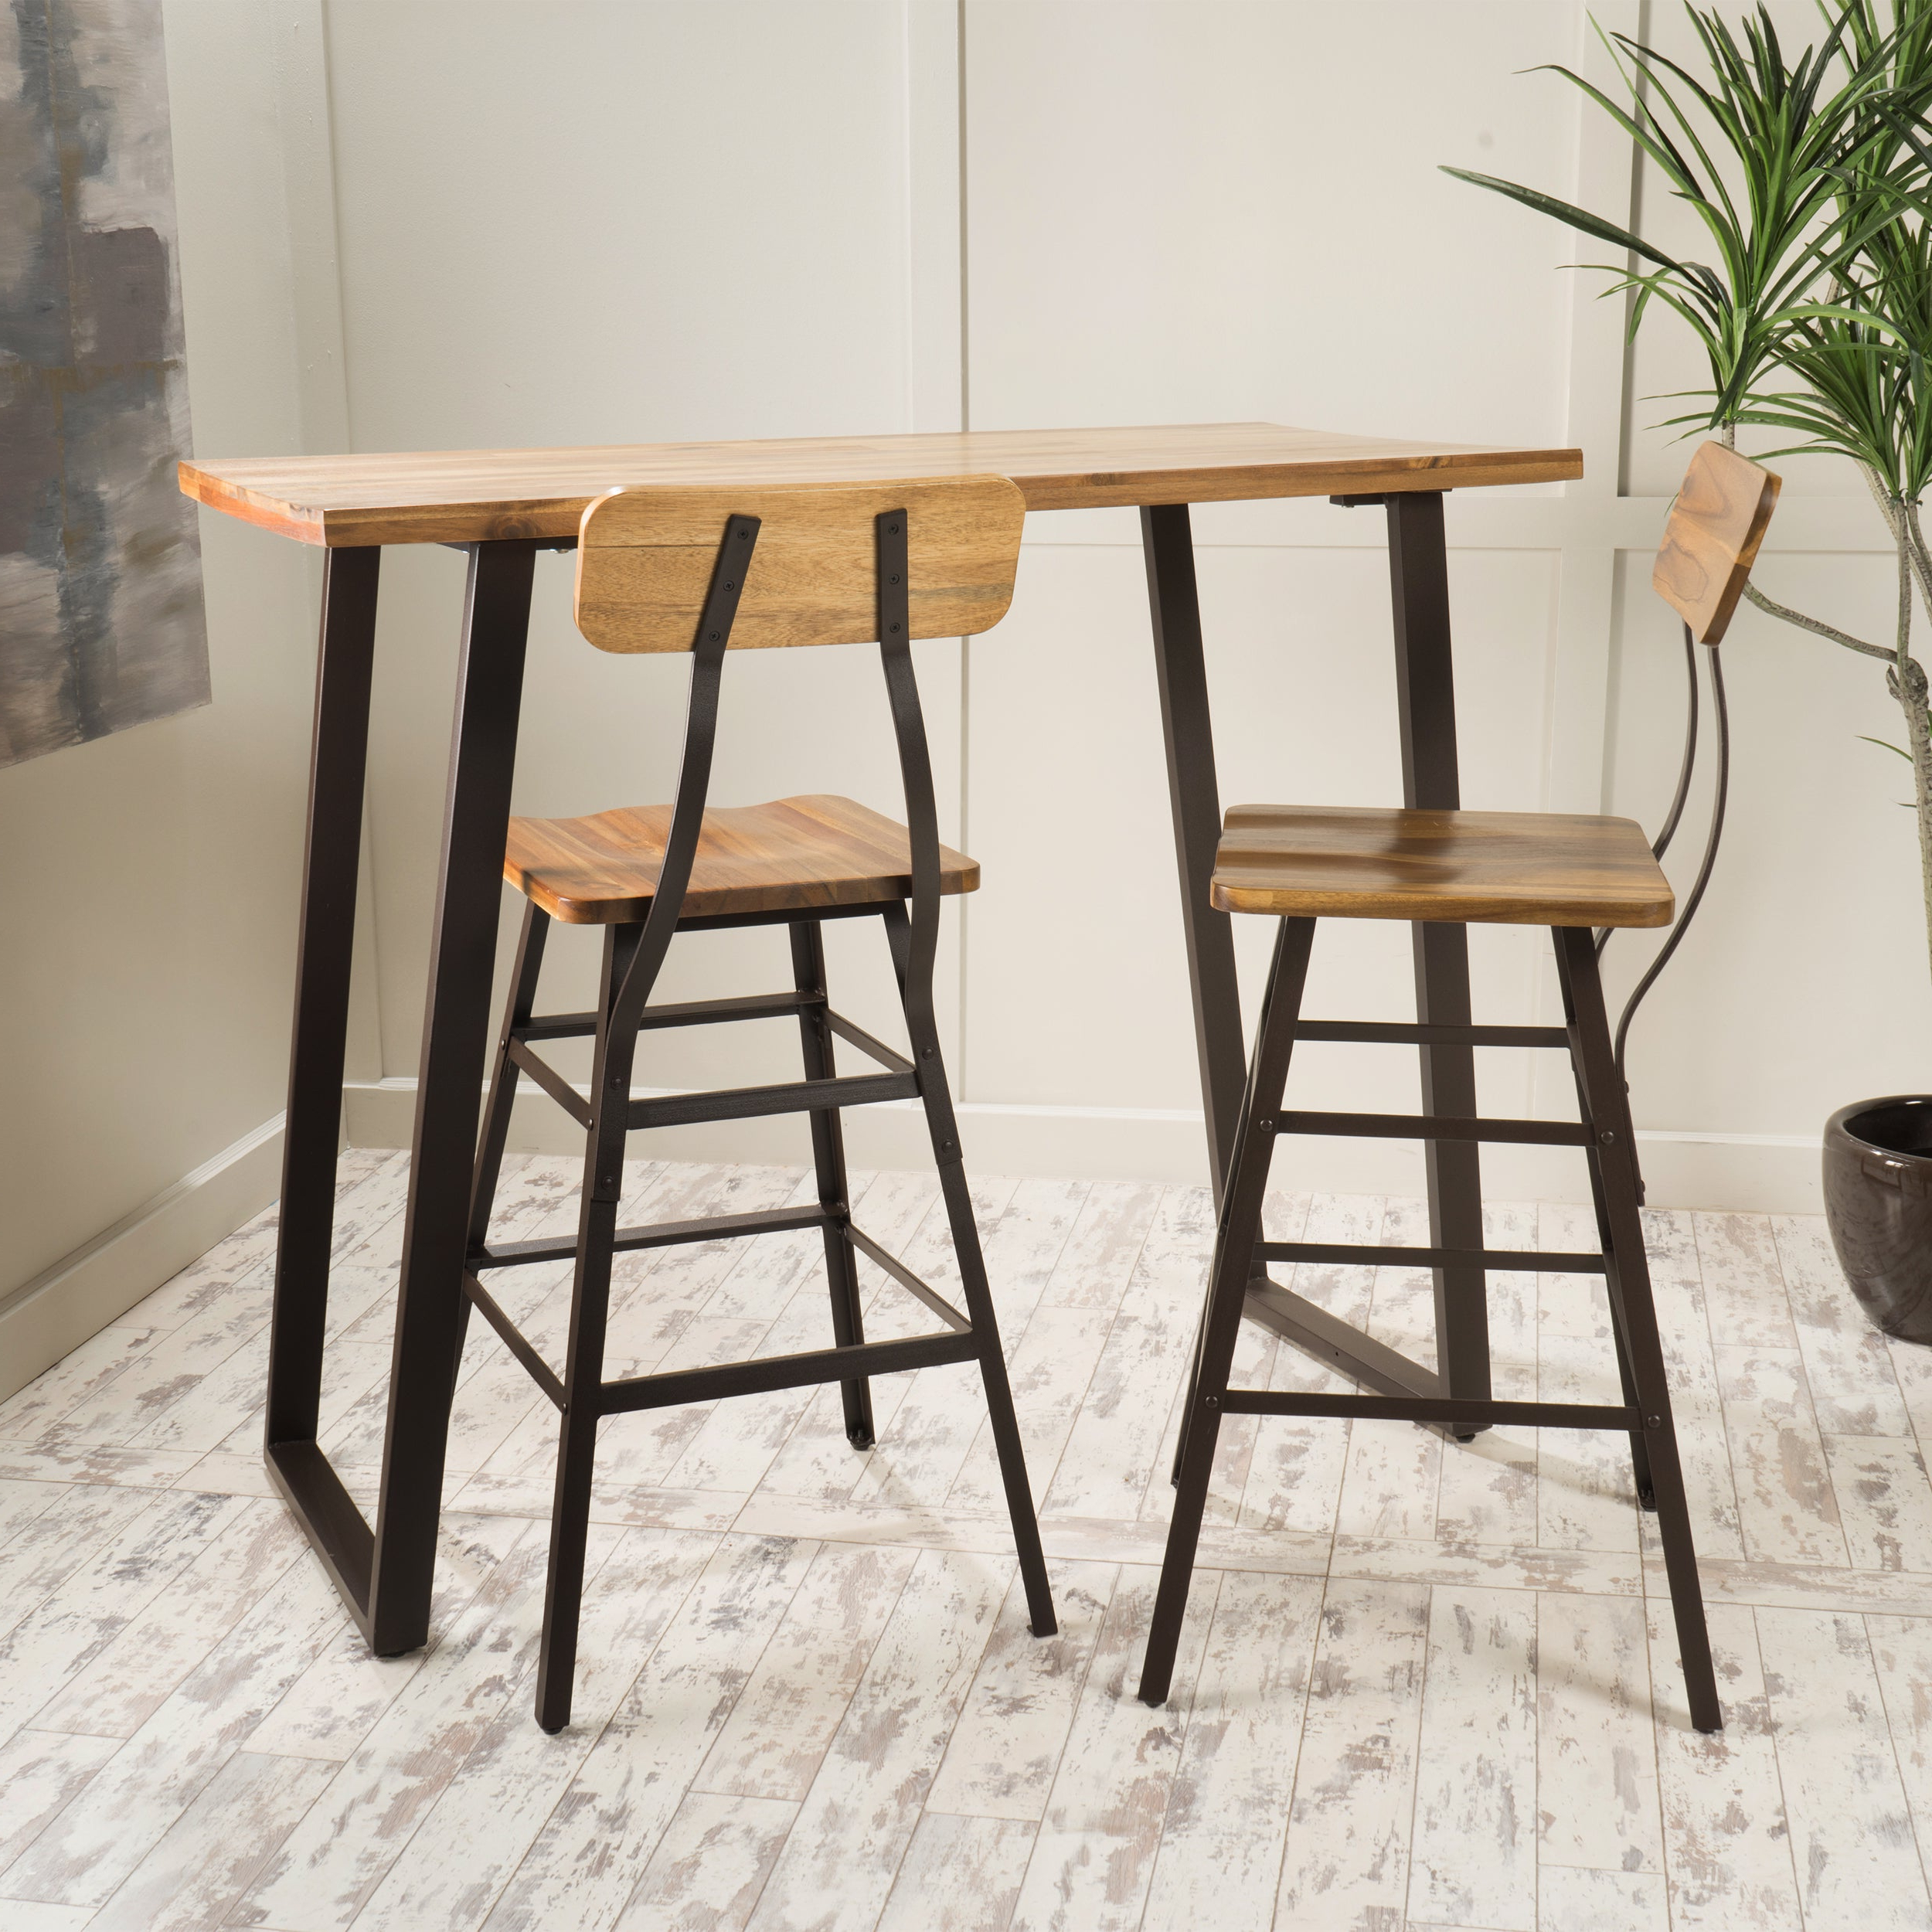 2019 Kaya 3 Piece Dining Sets Intended For Shop Ramona 3 Piece Acacia Wood Bar Setchristopher Knight Home (View 7 of 25)